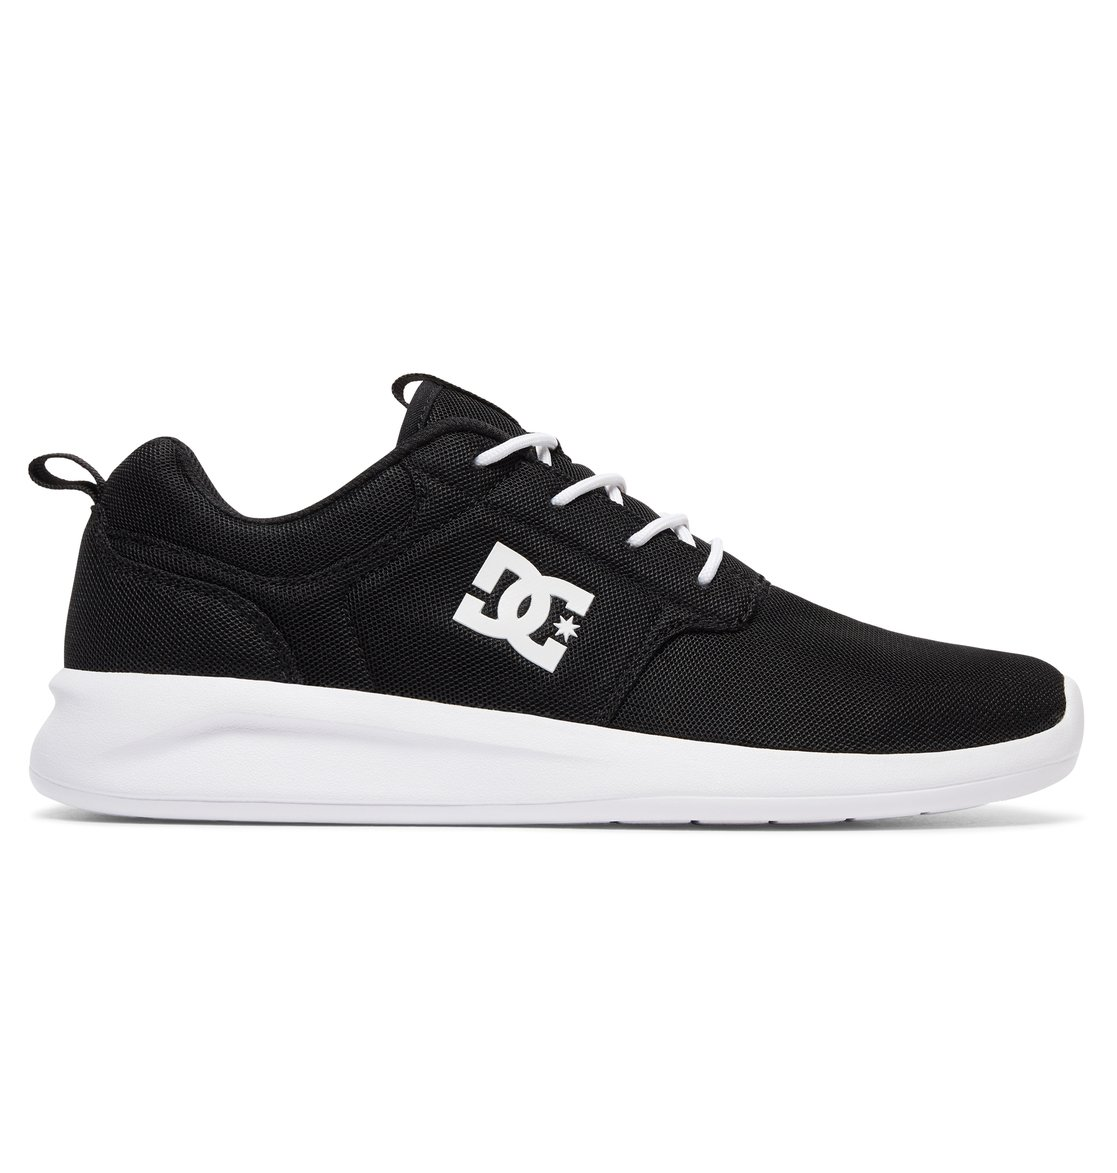 DC Shoes was started by Damon Way and Ken Block after the two met during a community college class and launched a series of startups. The two friends started Eightball clothing, Blunt Magazine, Type A Snowboards, and Droors clothing over the subsequent years.